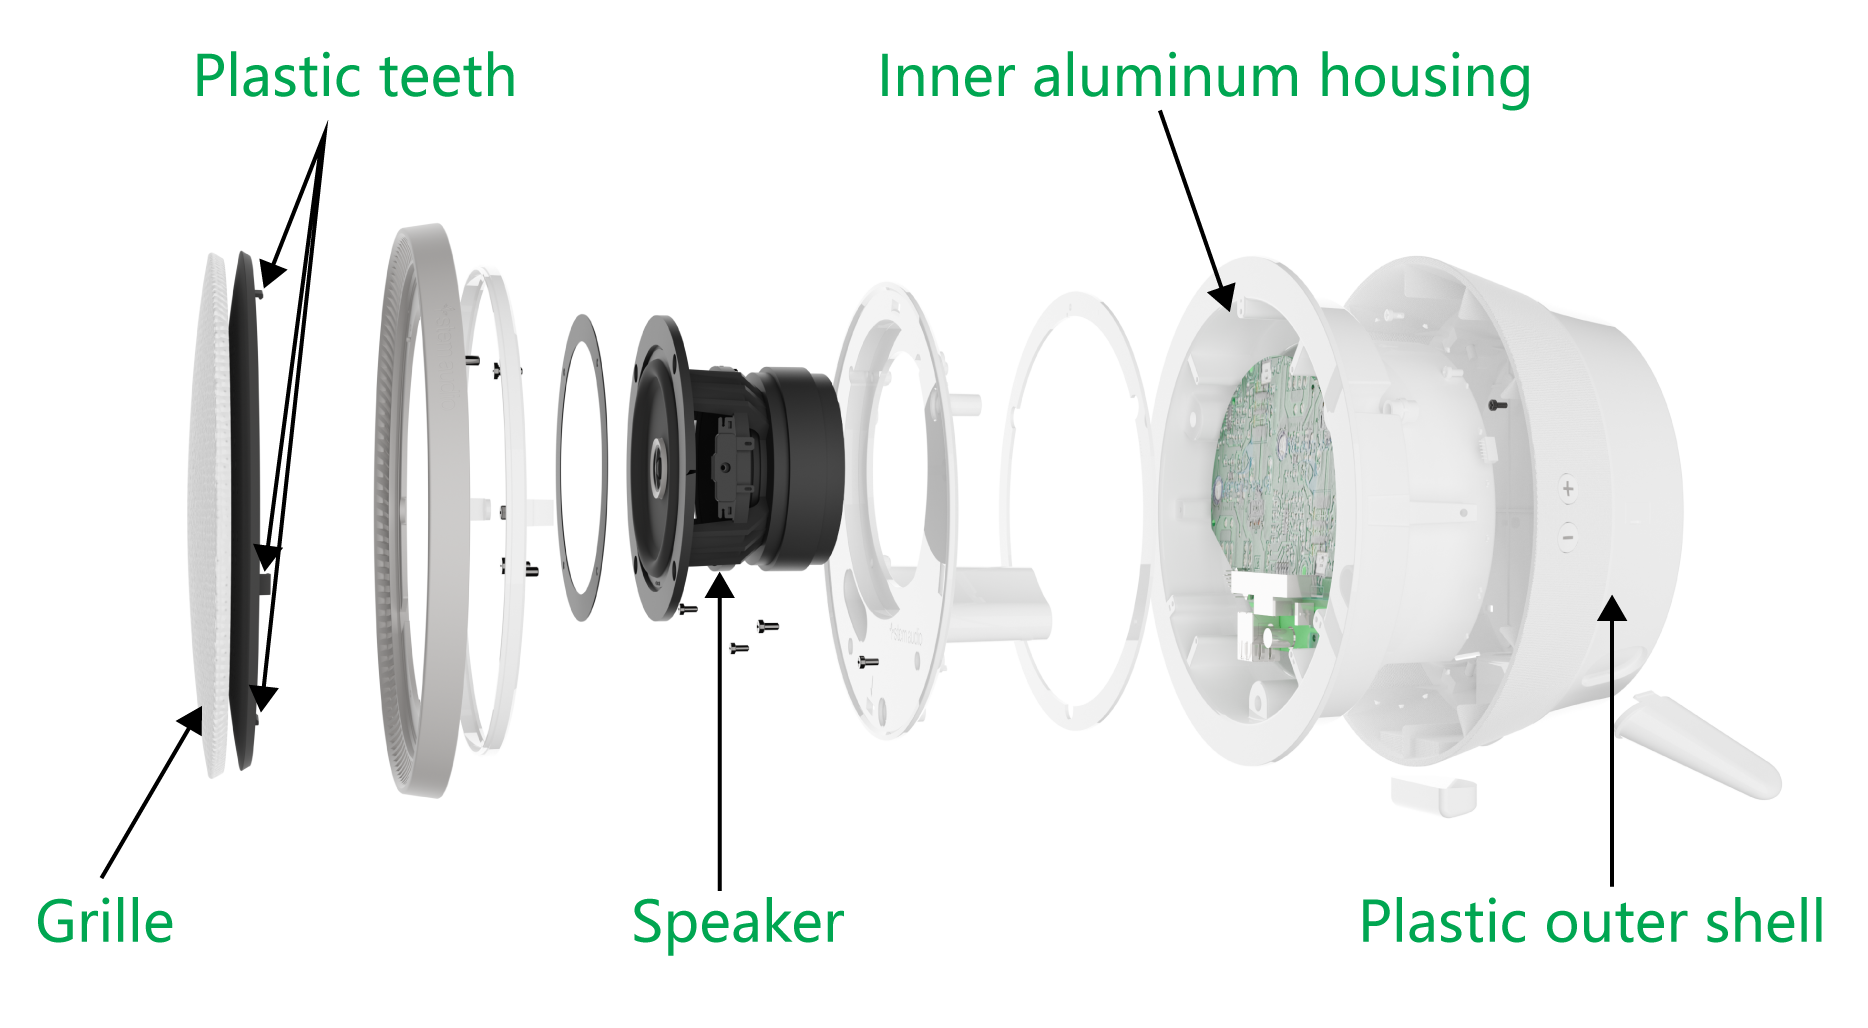 An exploded-view image of the Stem Speaker, with internal components labeled.